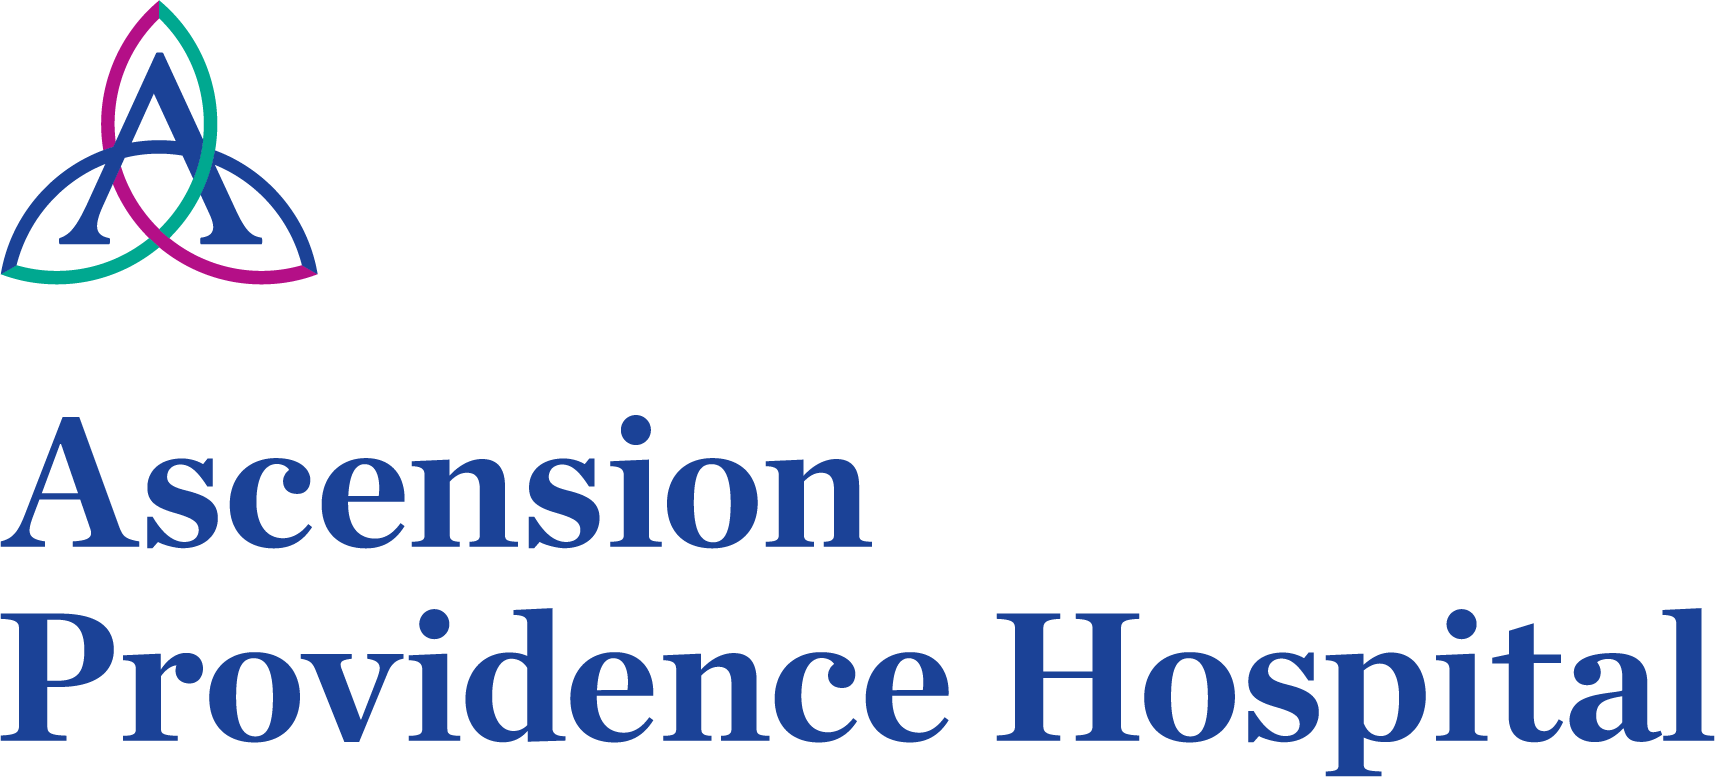 Asension Providence Hospital.png